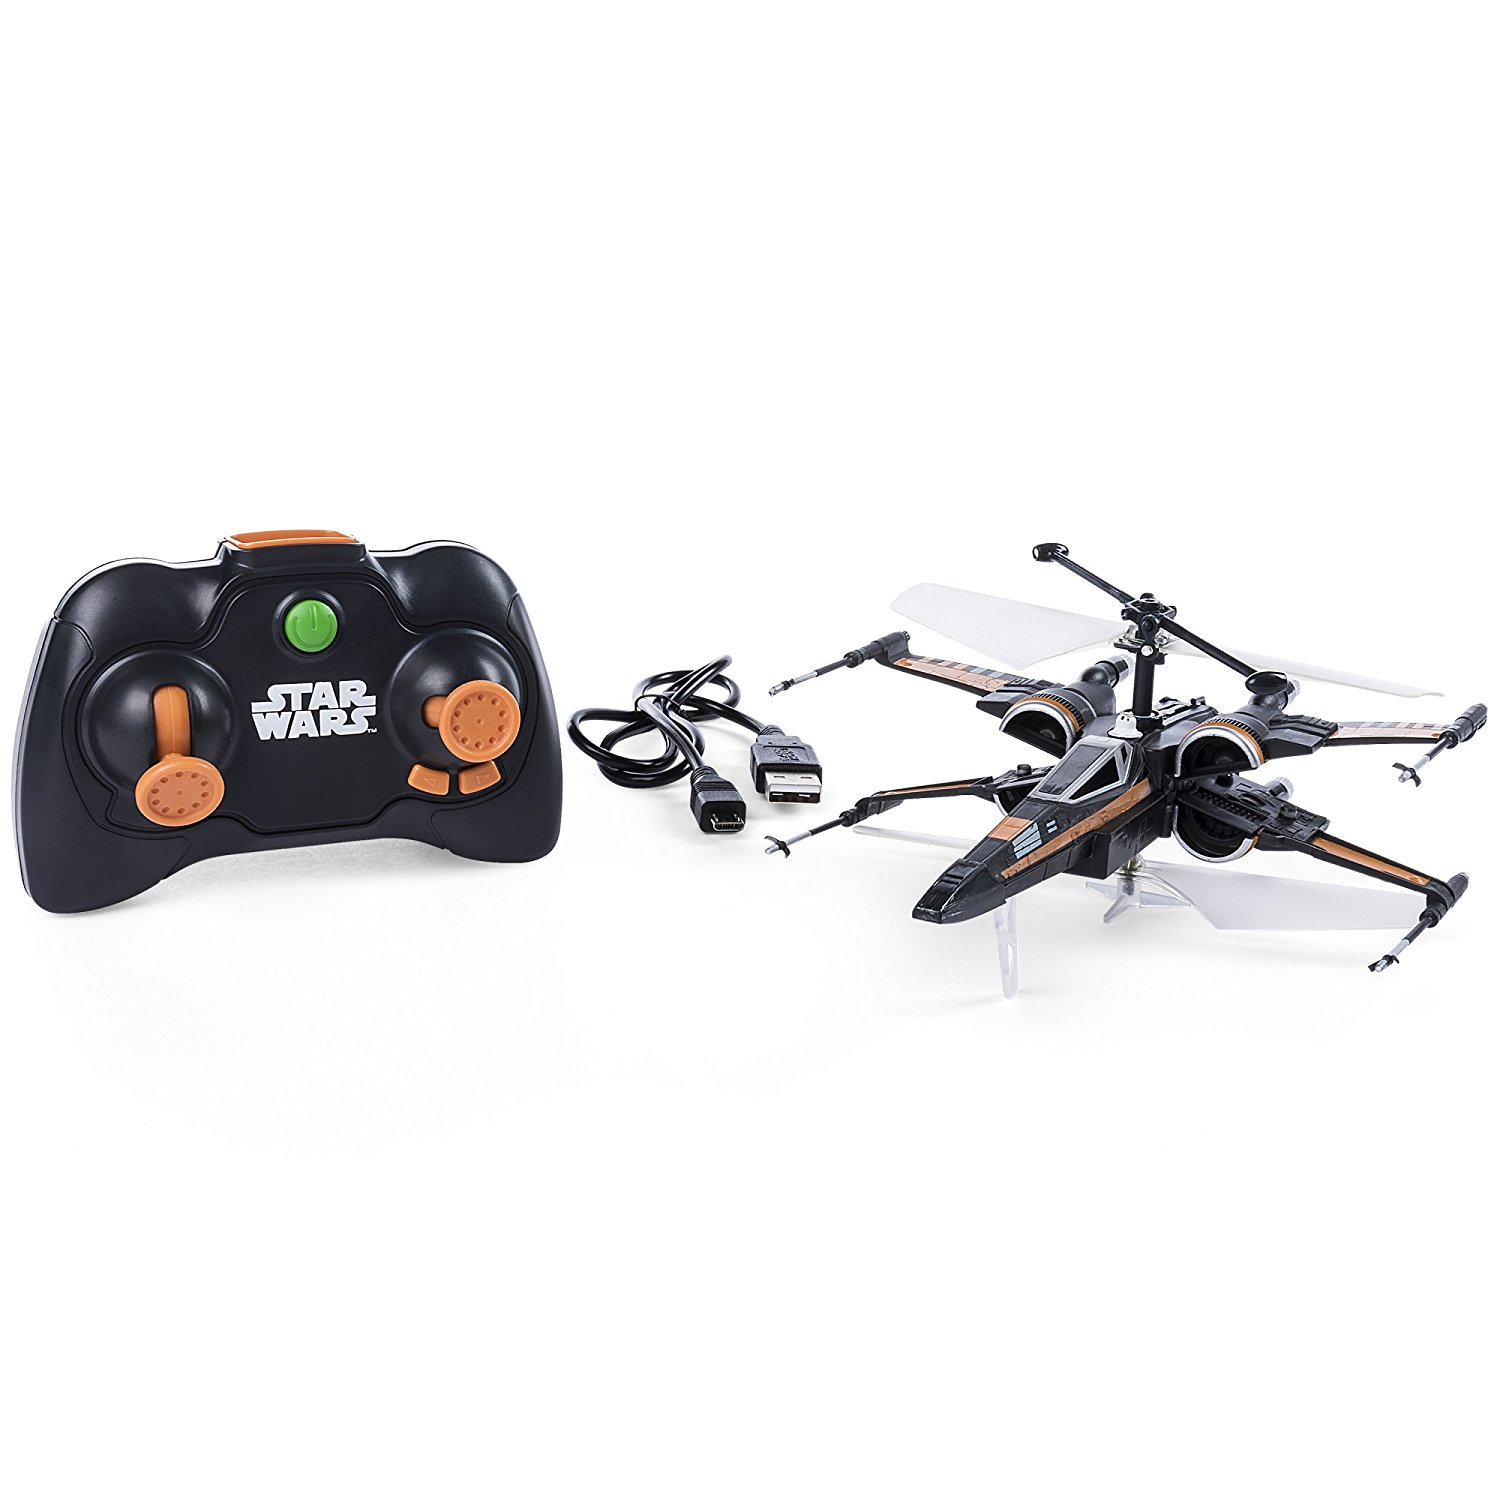 Air Hogs � Poes Boosted X-wing Fighter, Single Rotor Star Wars, Toy Jet by